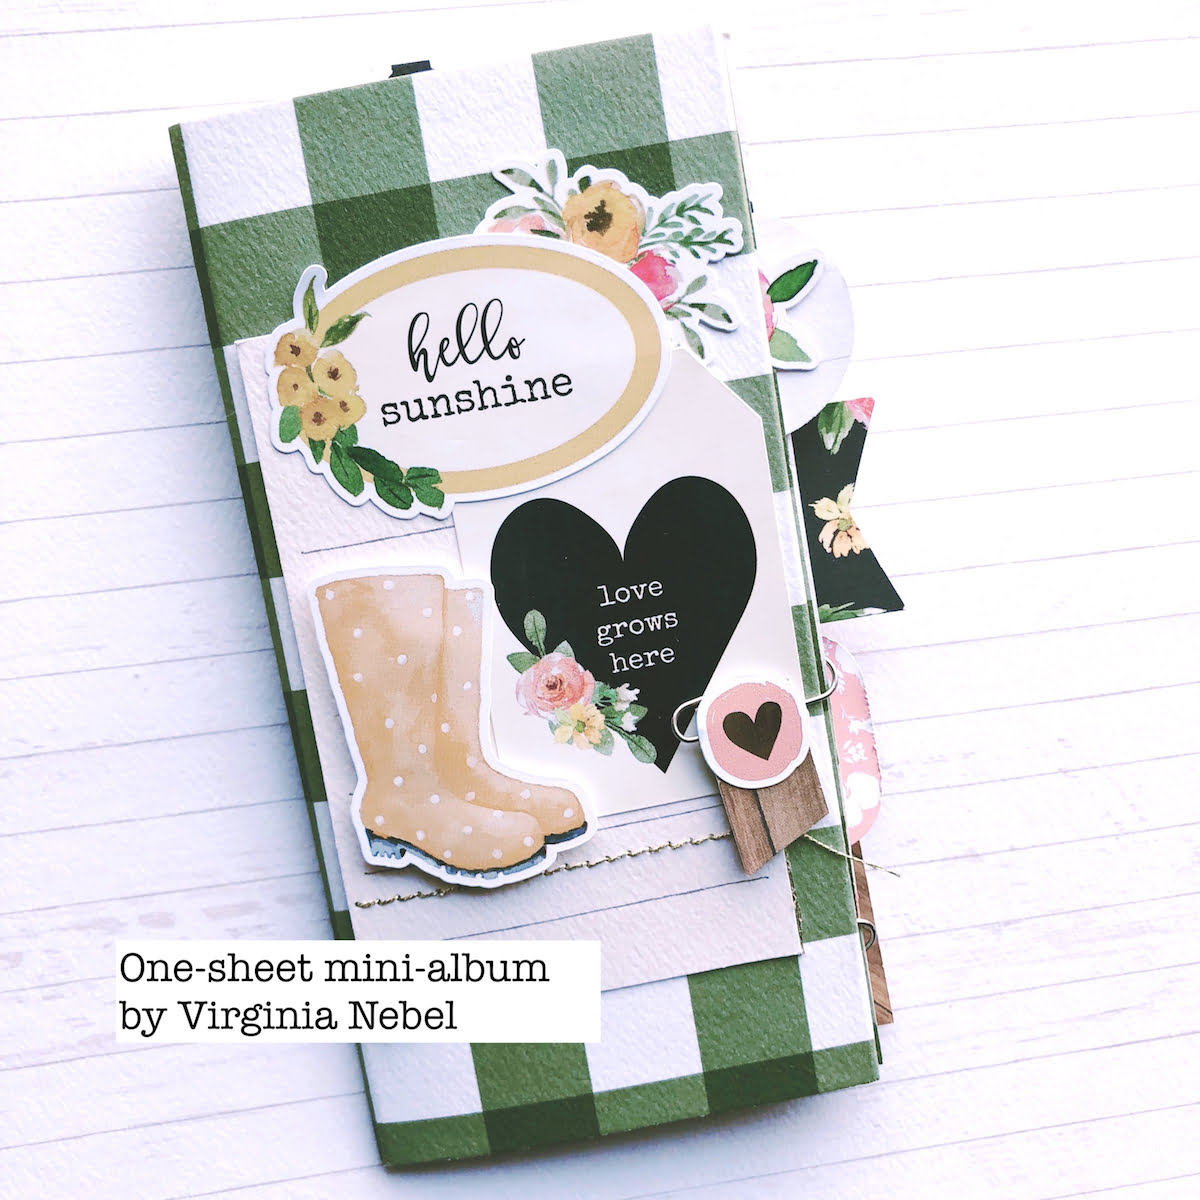 One sheet mini album by Virginia Nebel for Scrapbook & Cards Today magazine